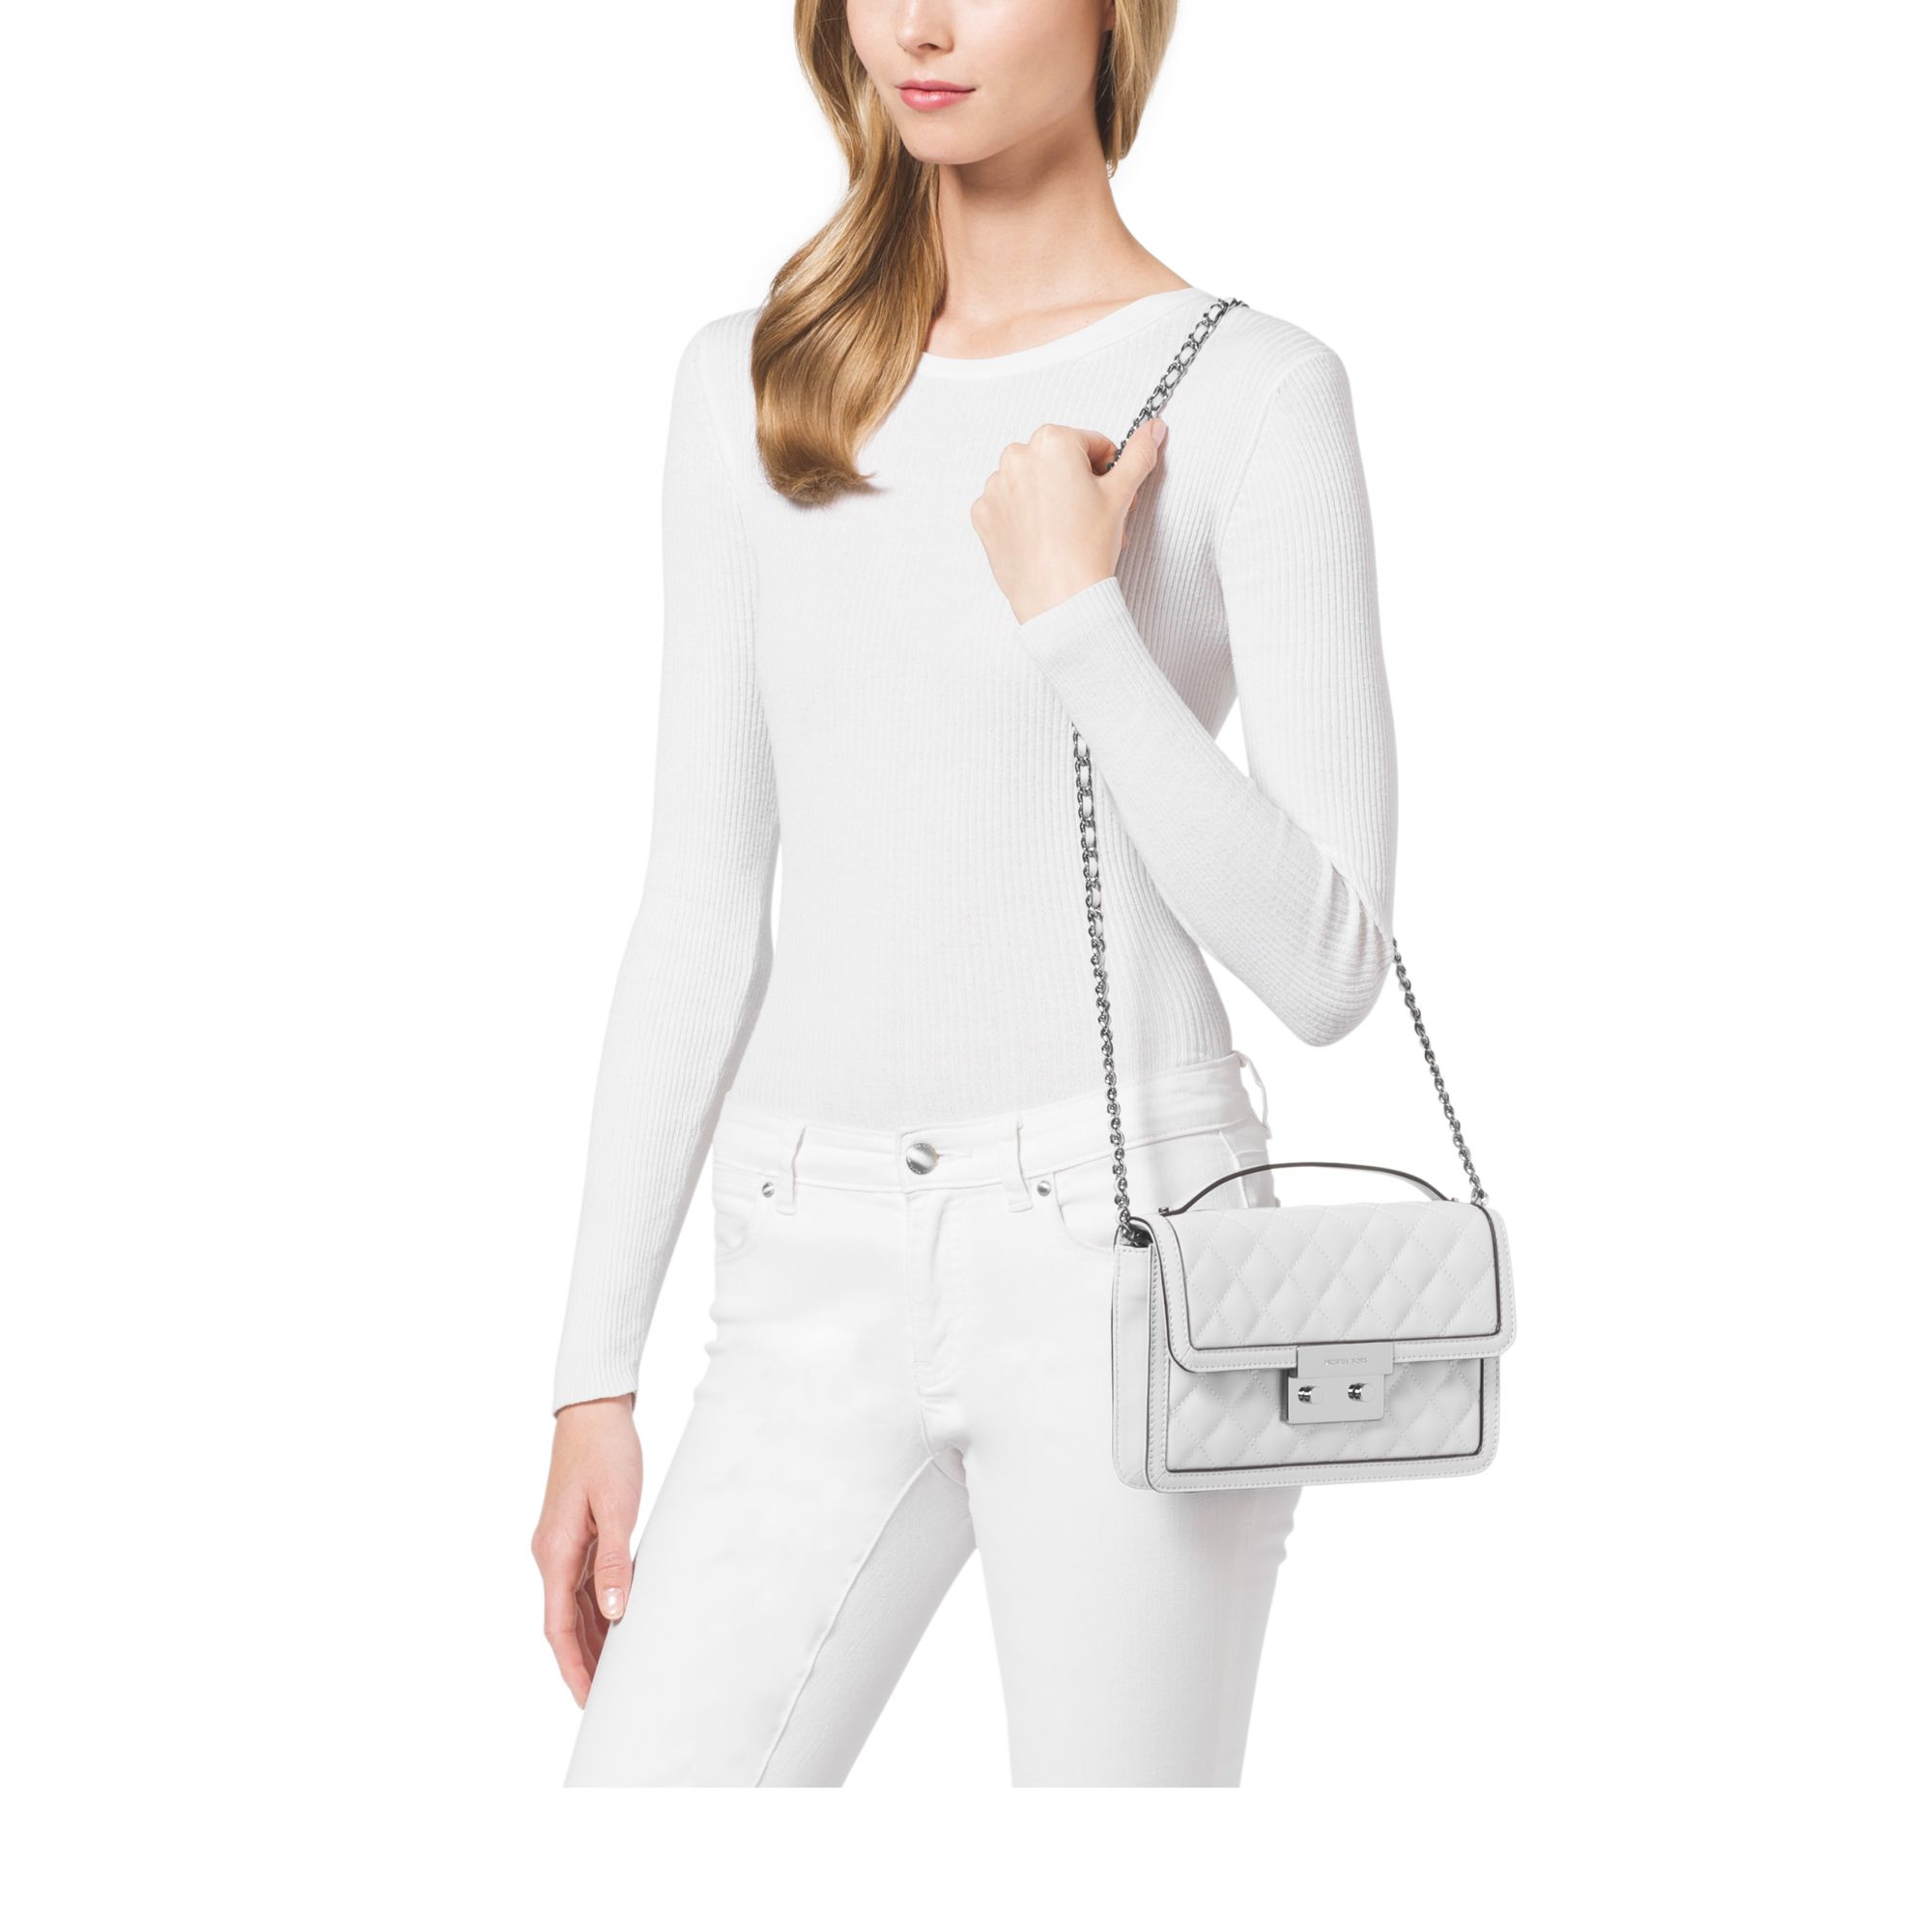 e02b6be685e3 Lyst - Michael Kors Sloan Small Quilted-leather Crossbody in White